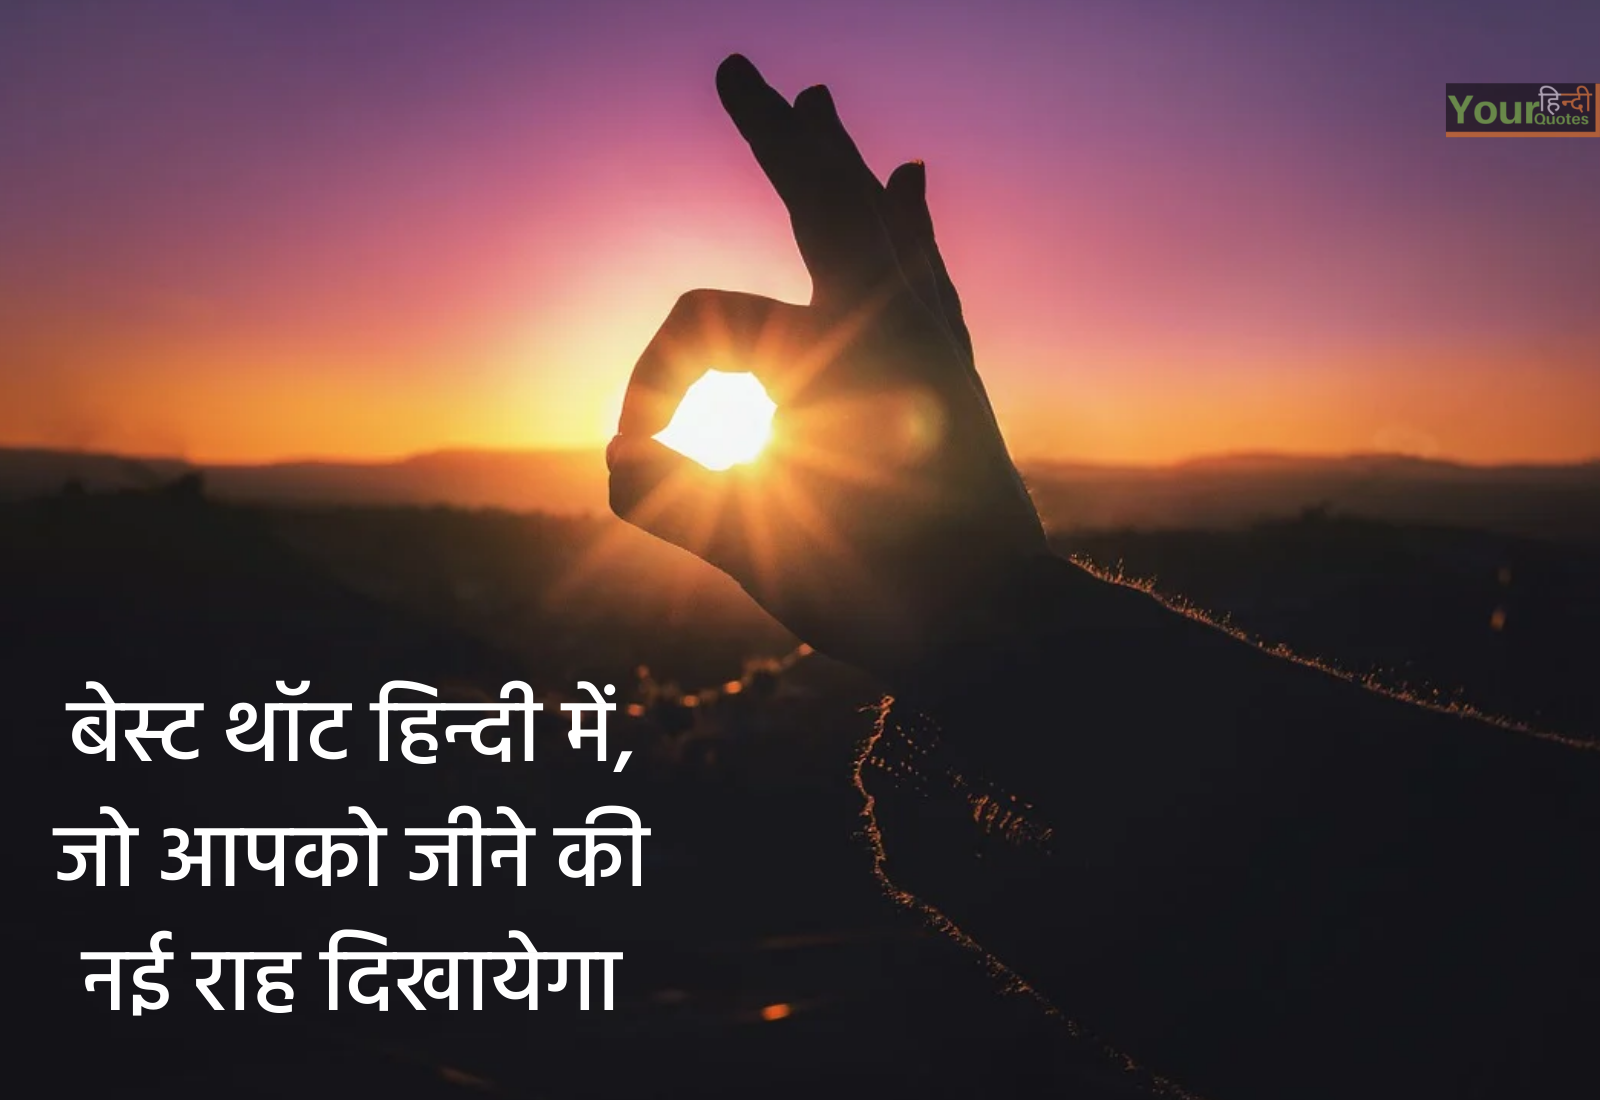 Best Thought Images in Hindi